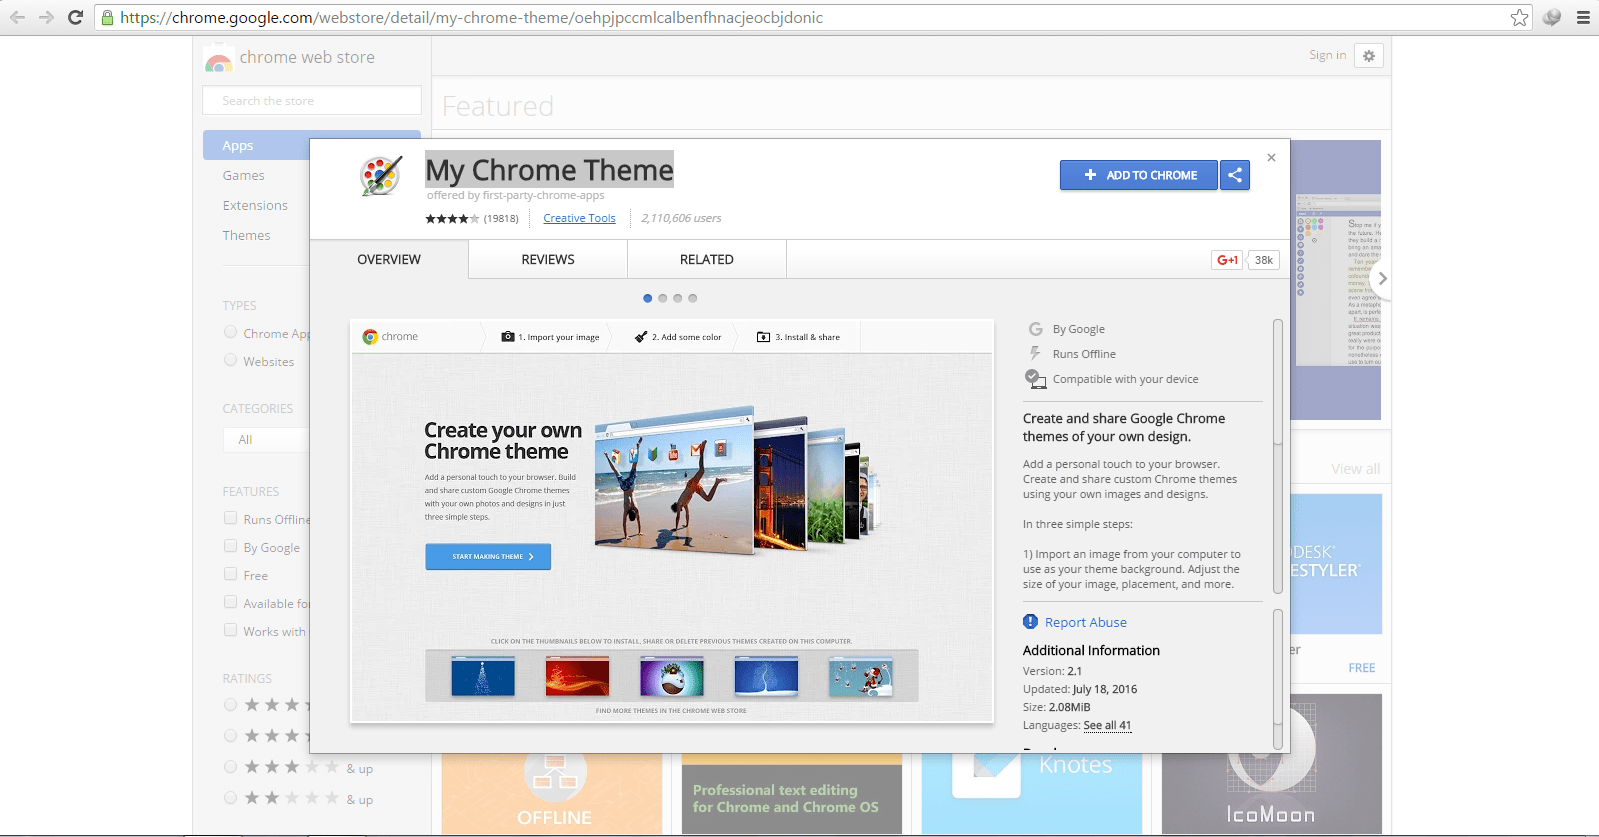 Google themes create your own - Capture